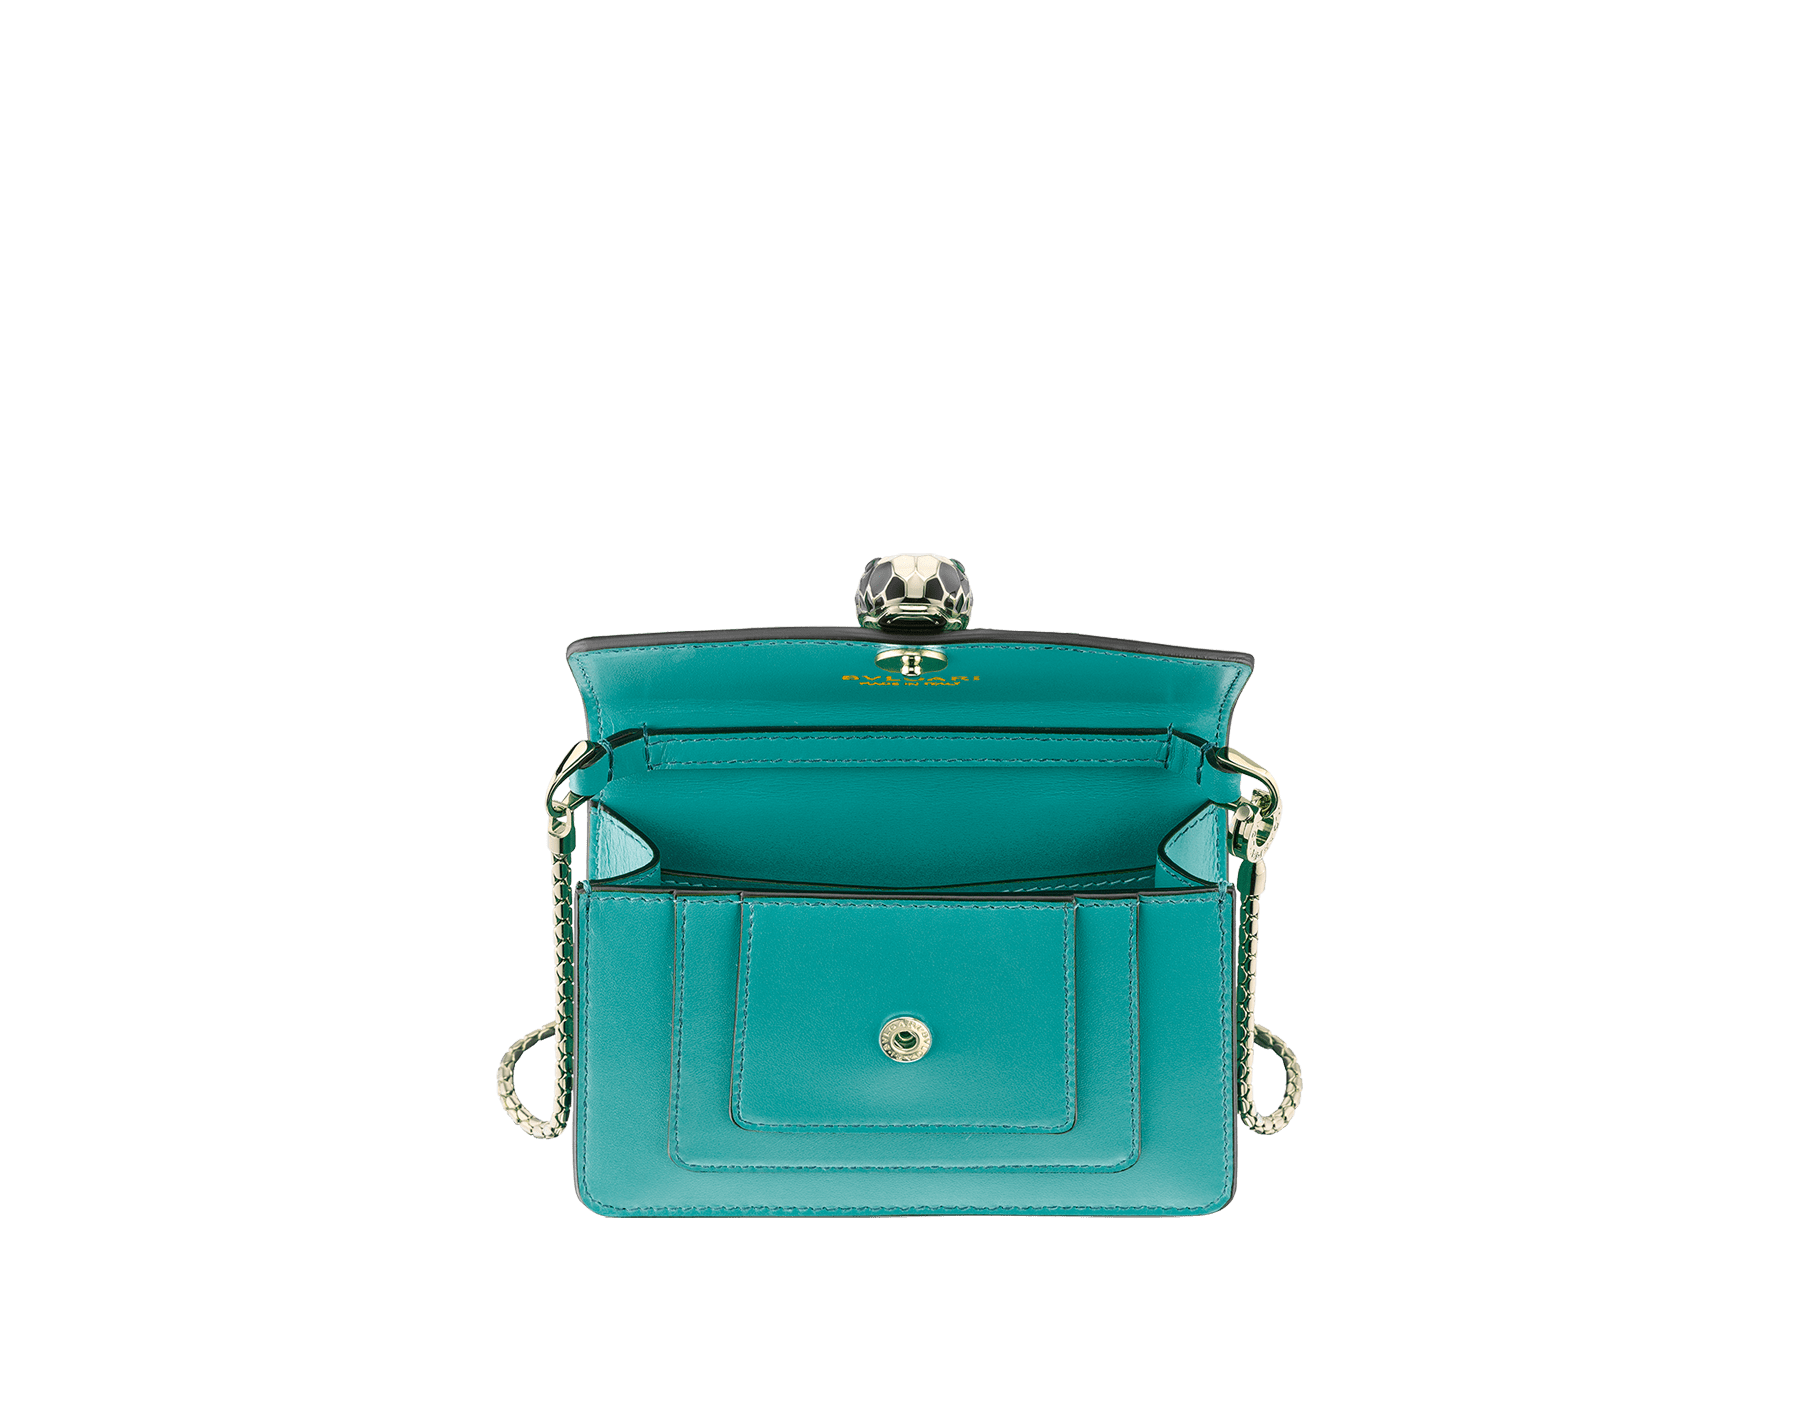 Bag charm Serpenti Forever miniature in arctic jade calf leather and red nappa lining. Iconic brass light gold plated snakehead stud closure enameled in black and white agate and finished with green enamel eyes. 289254 image 2